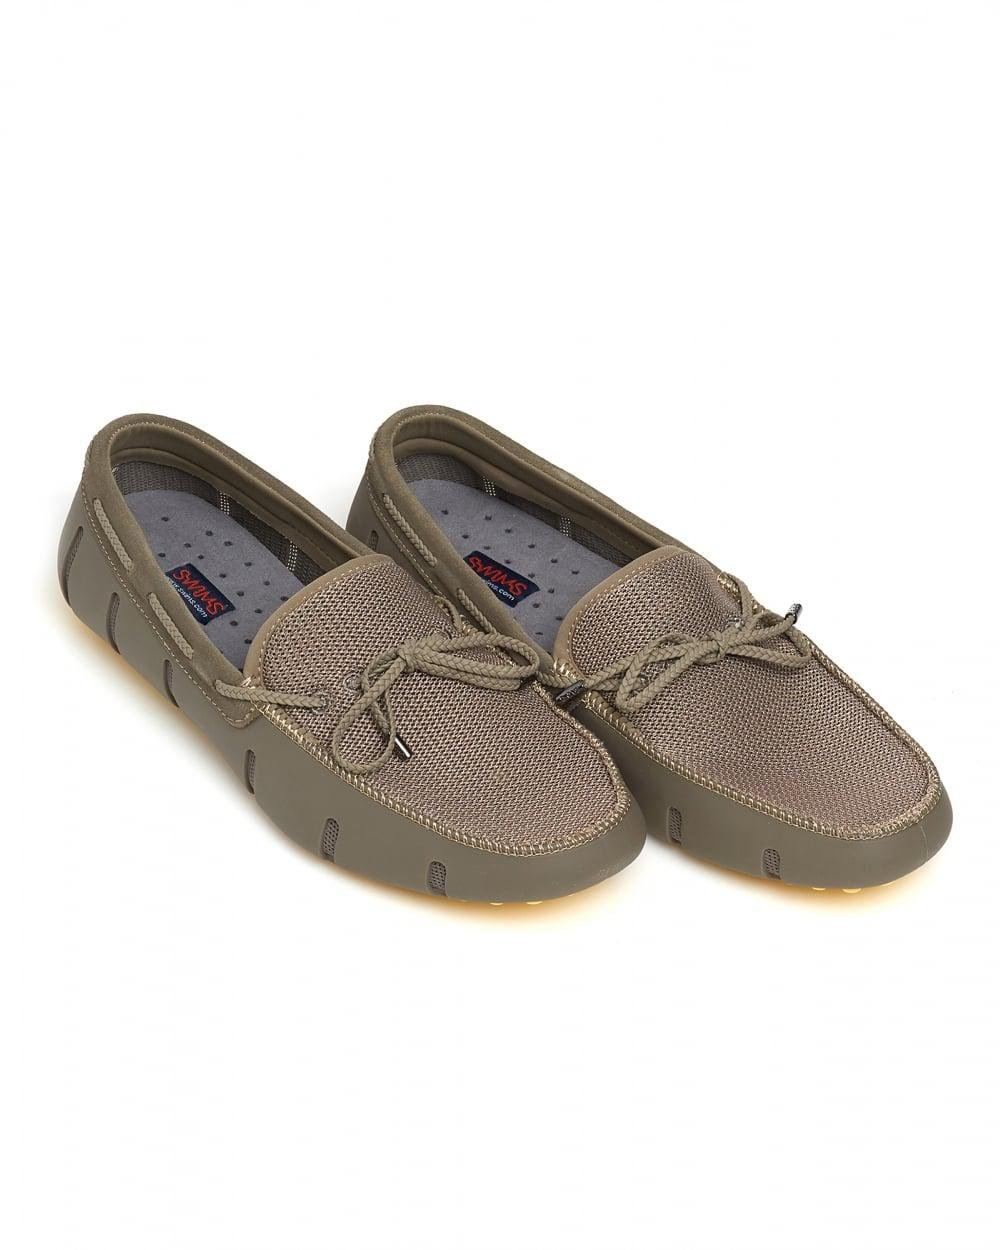 92743dcc57f Swims. Men s Natural Braided Lace Lux Loafer